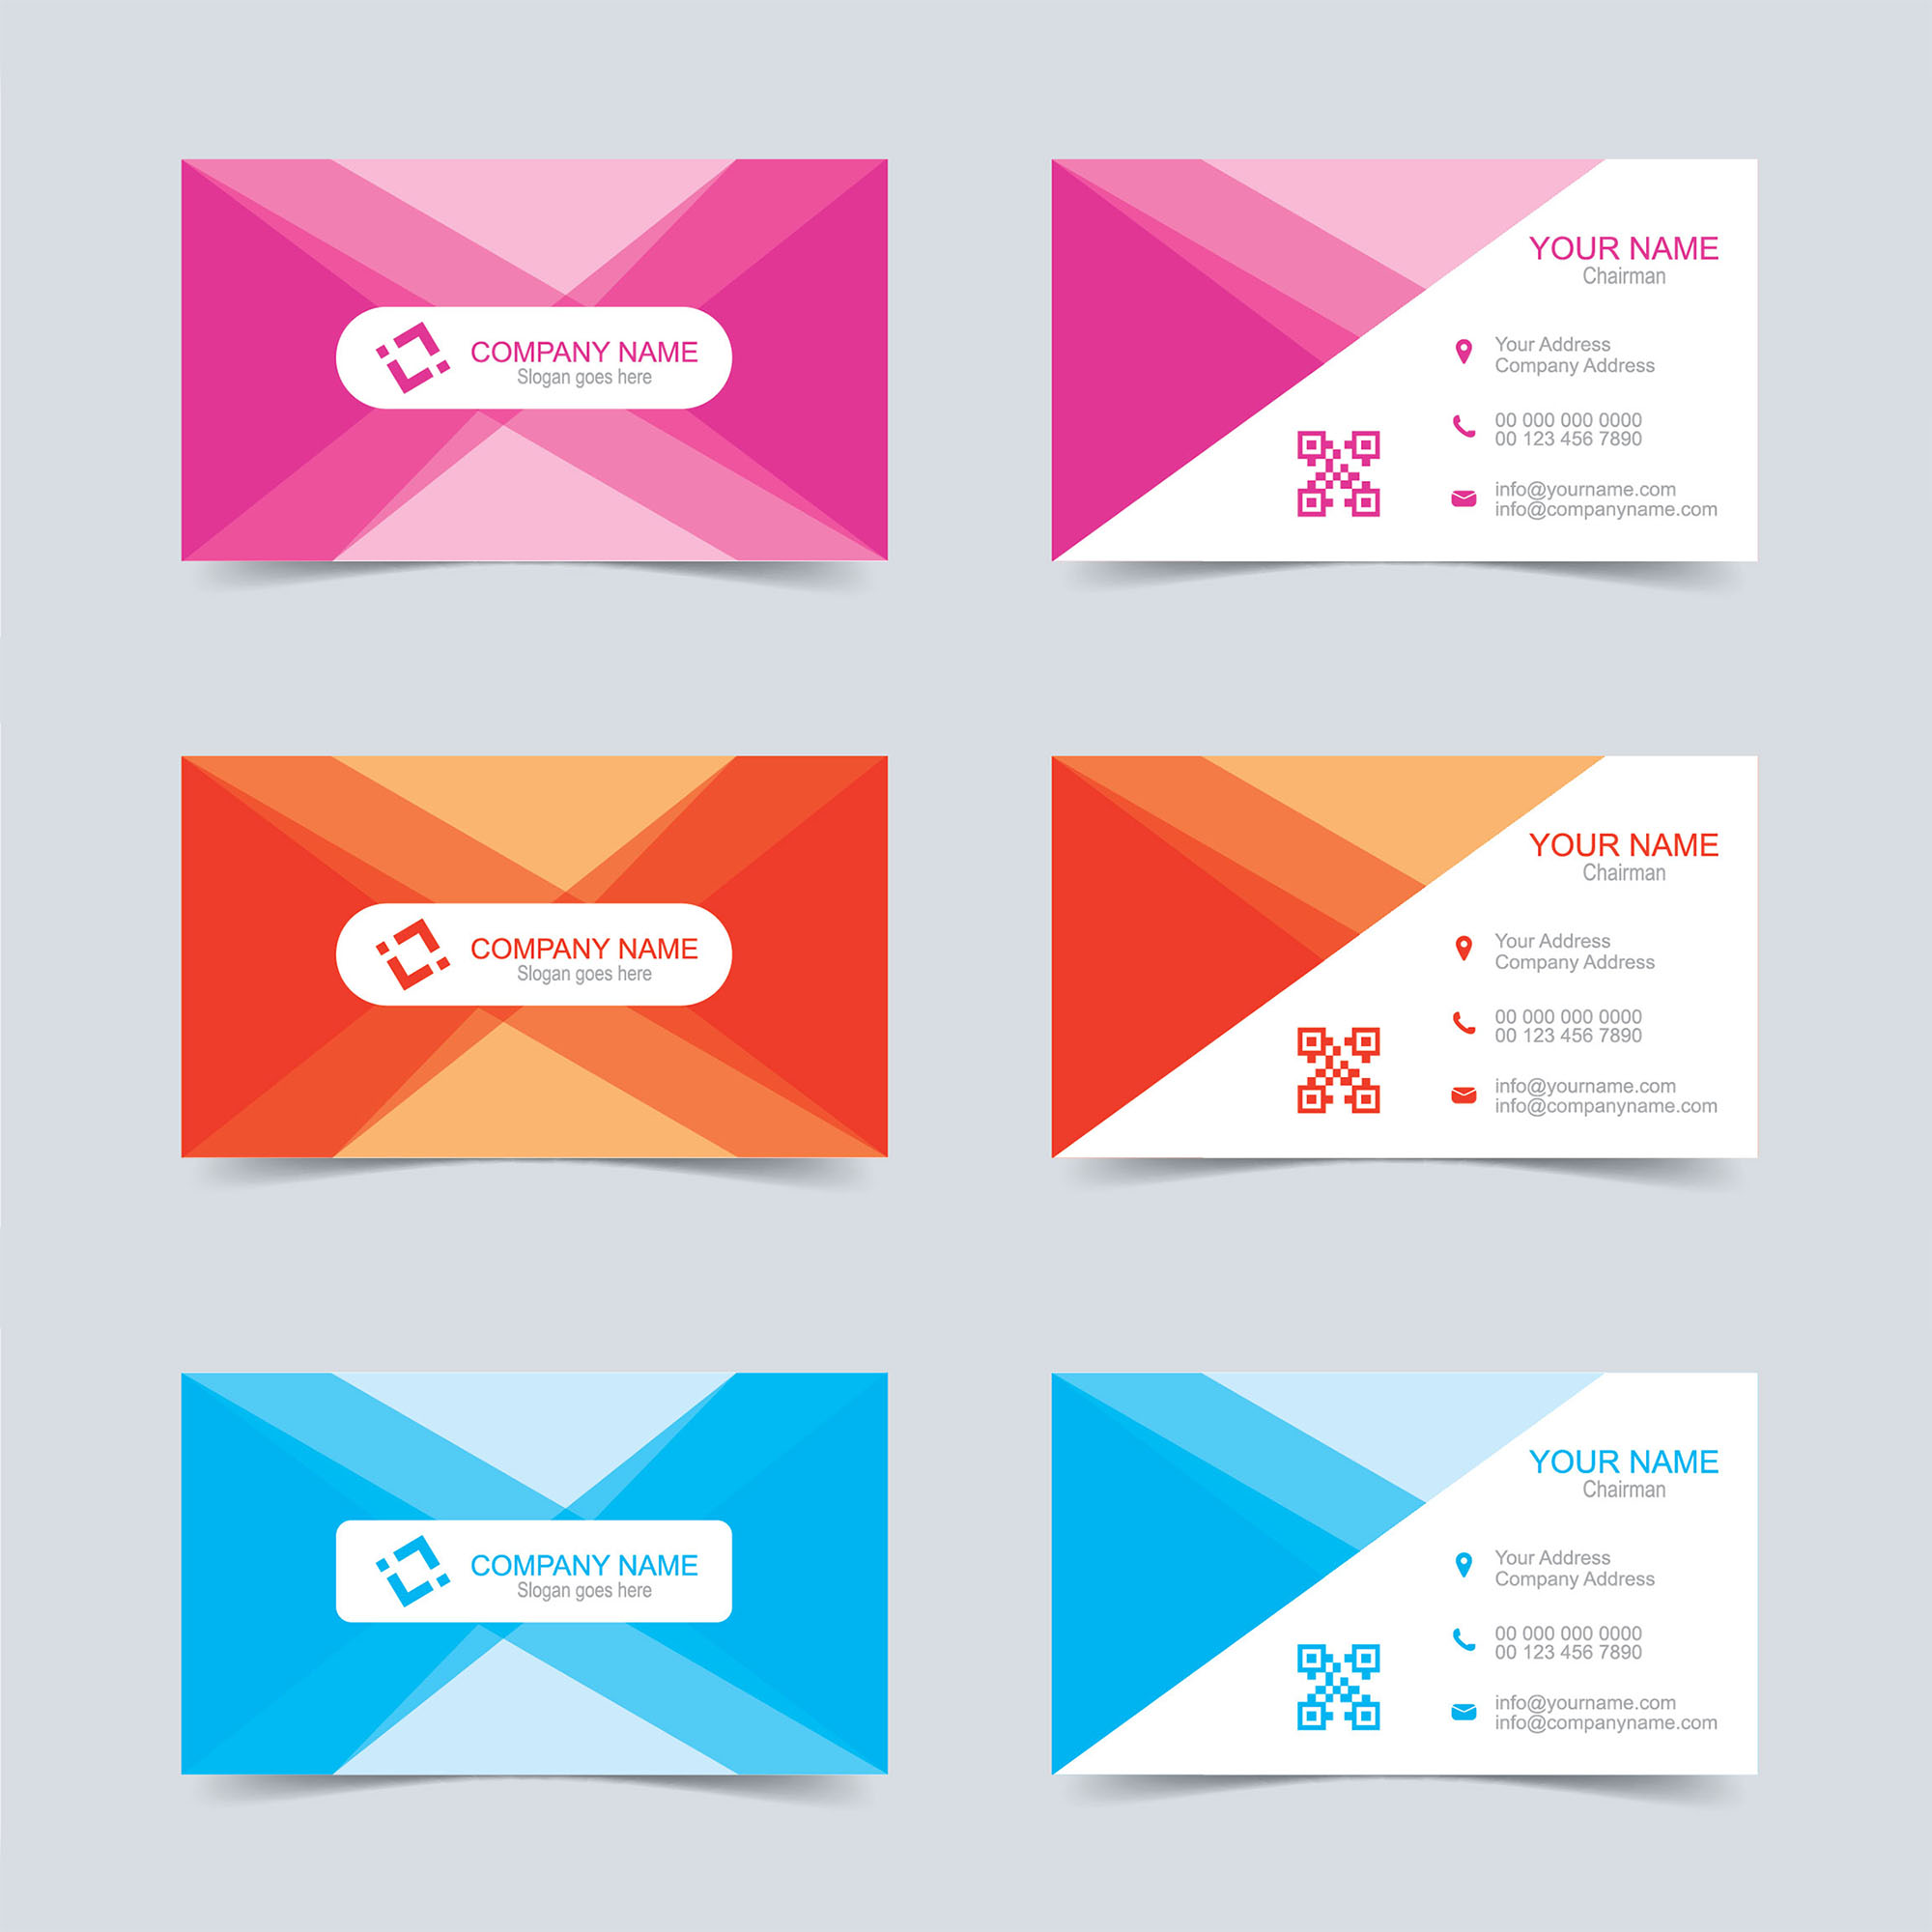 Vector business card template free download wisxi business card business cards business card design business card template design templates accmission